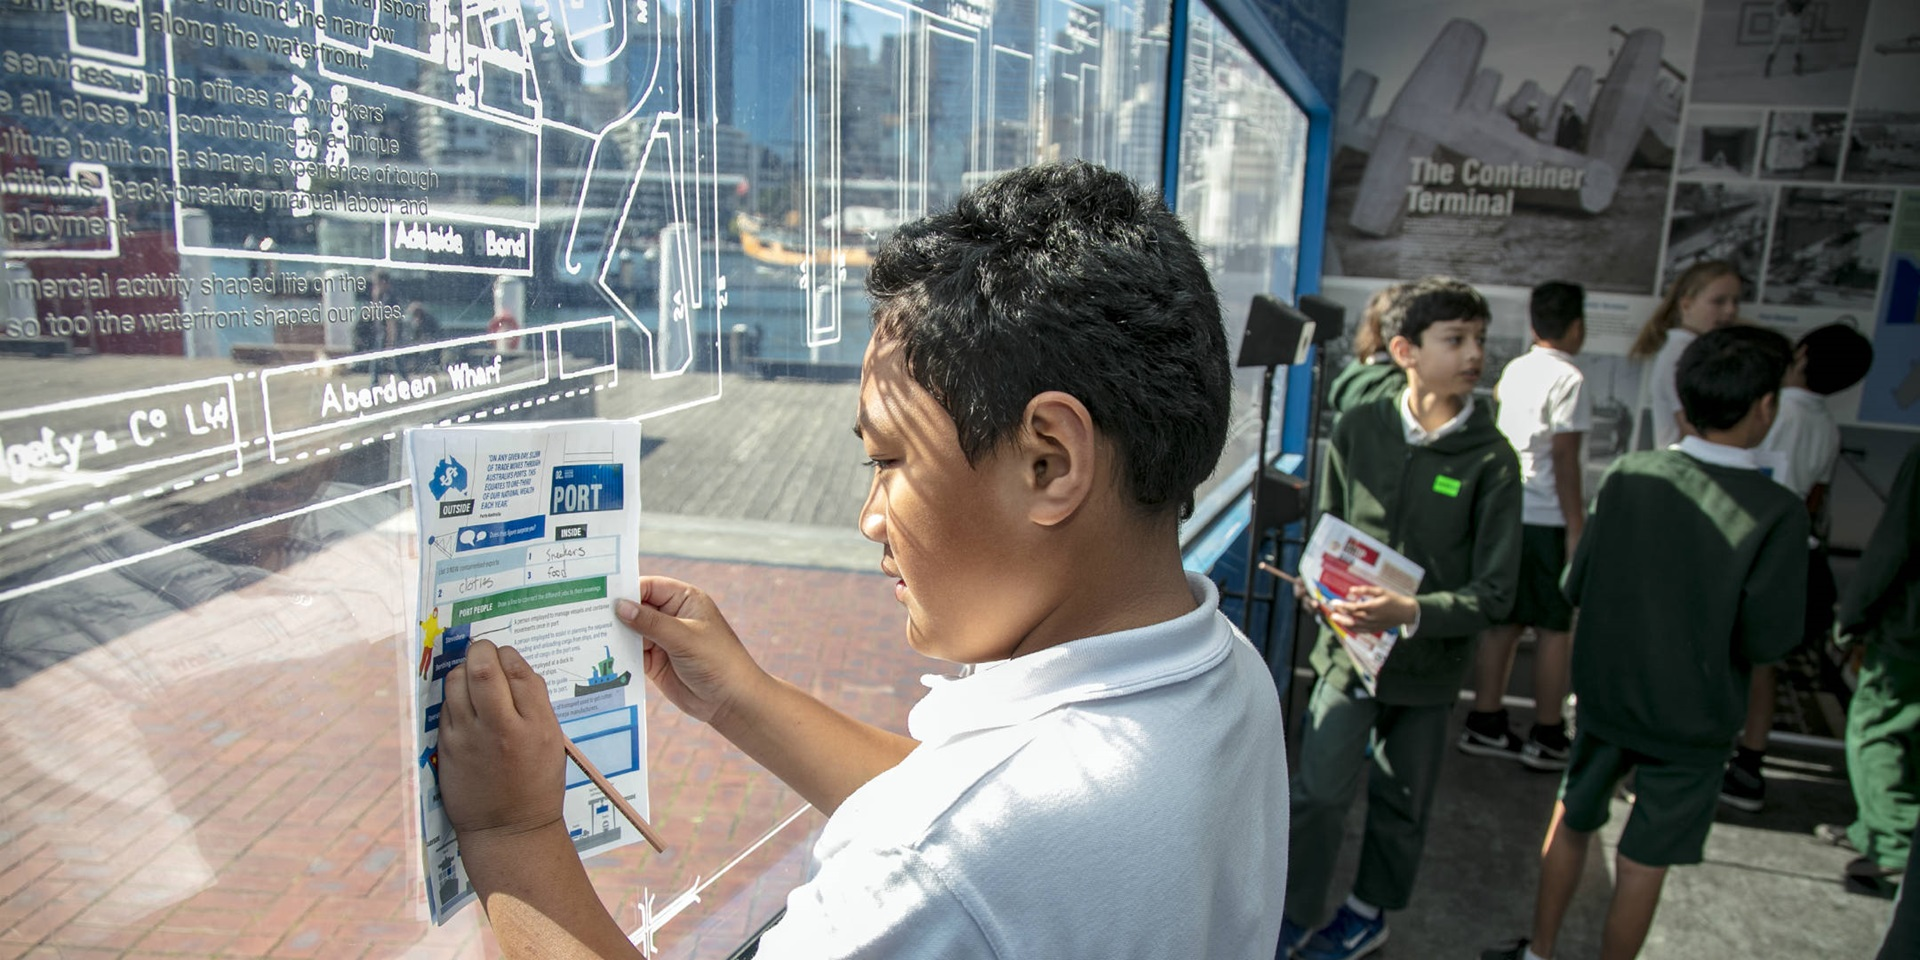 Exhibition education program. School kids visiting the 'Container' exhibition, Wharf side, ANMM, August 2018